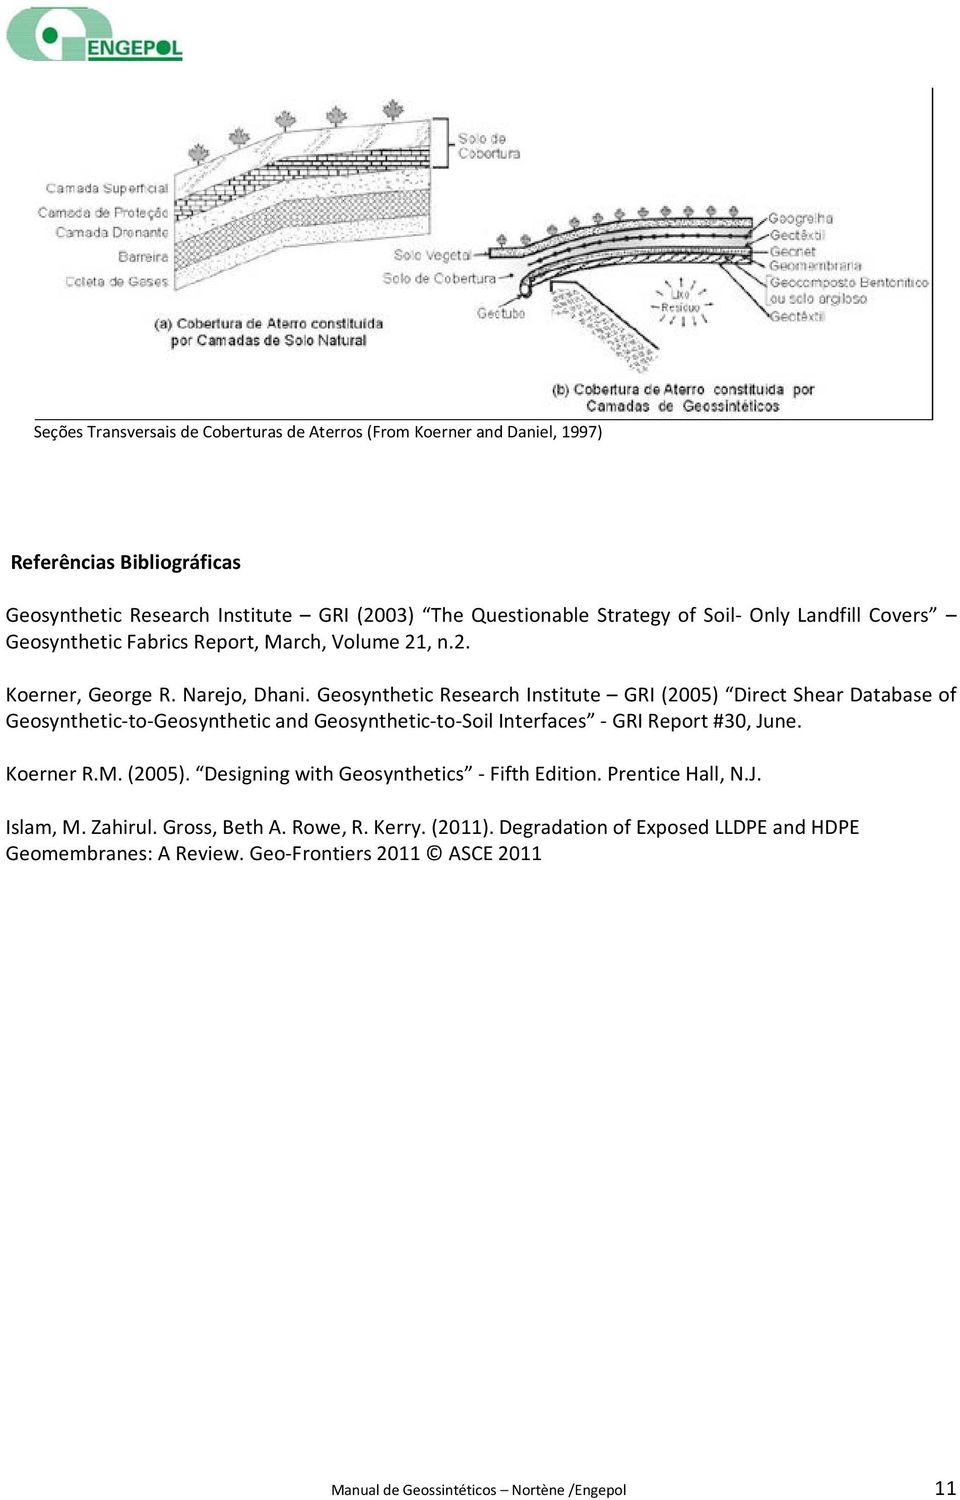 Geosynthetic Research Institute GRI (2005) Direct Shear Database of Geosynthetic-to-Geosynthetic and Geosynthetic-to-Soil Interfaces - GRI Report #30, June. Koerner R.M. (2005). Designing with Geosynthetics - Fifth Edition.